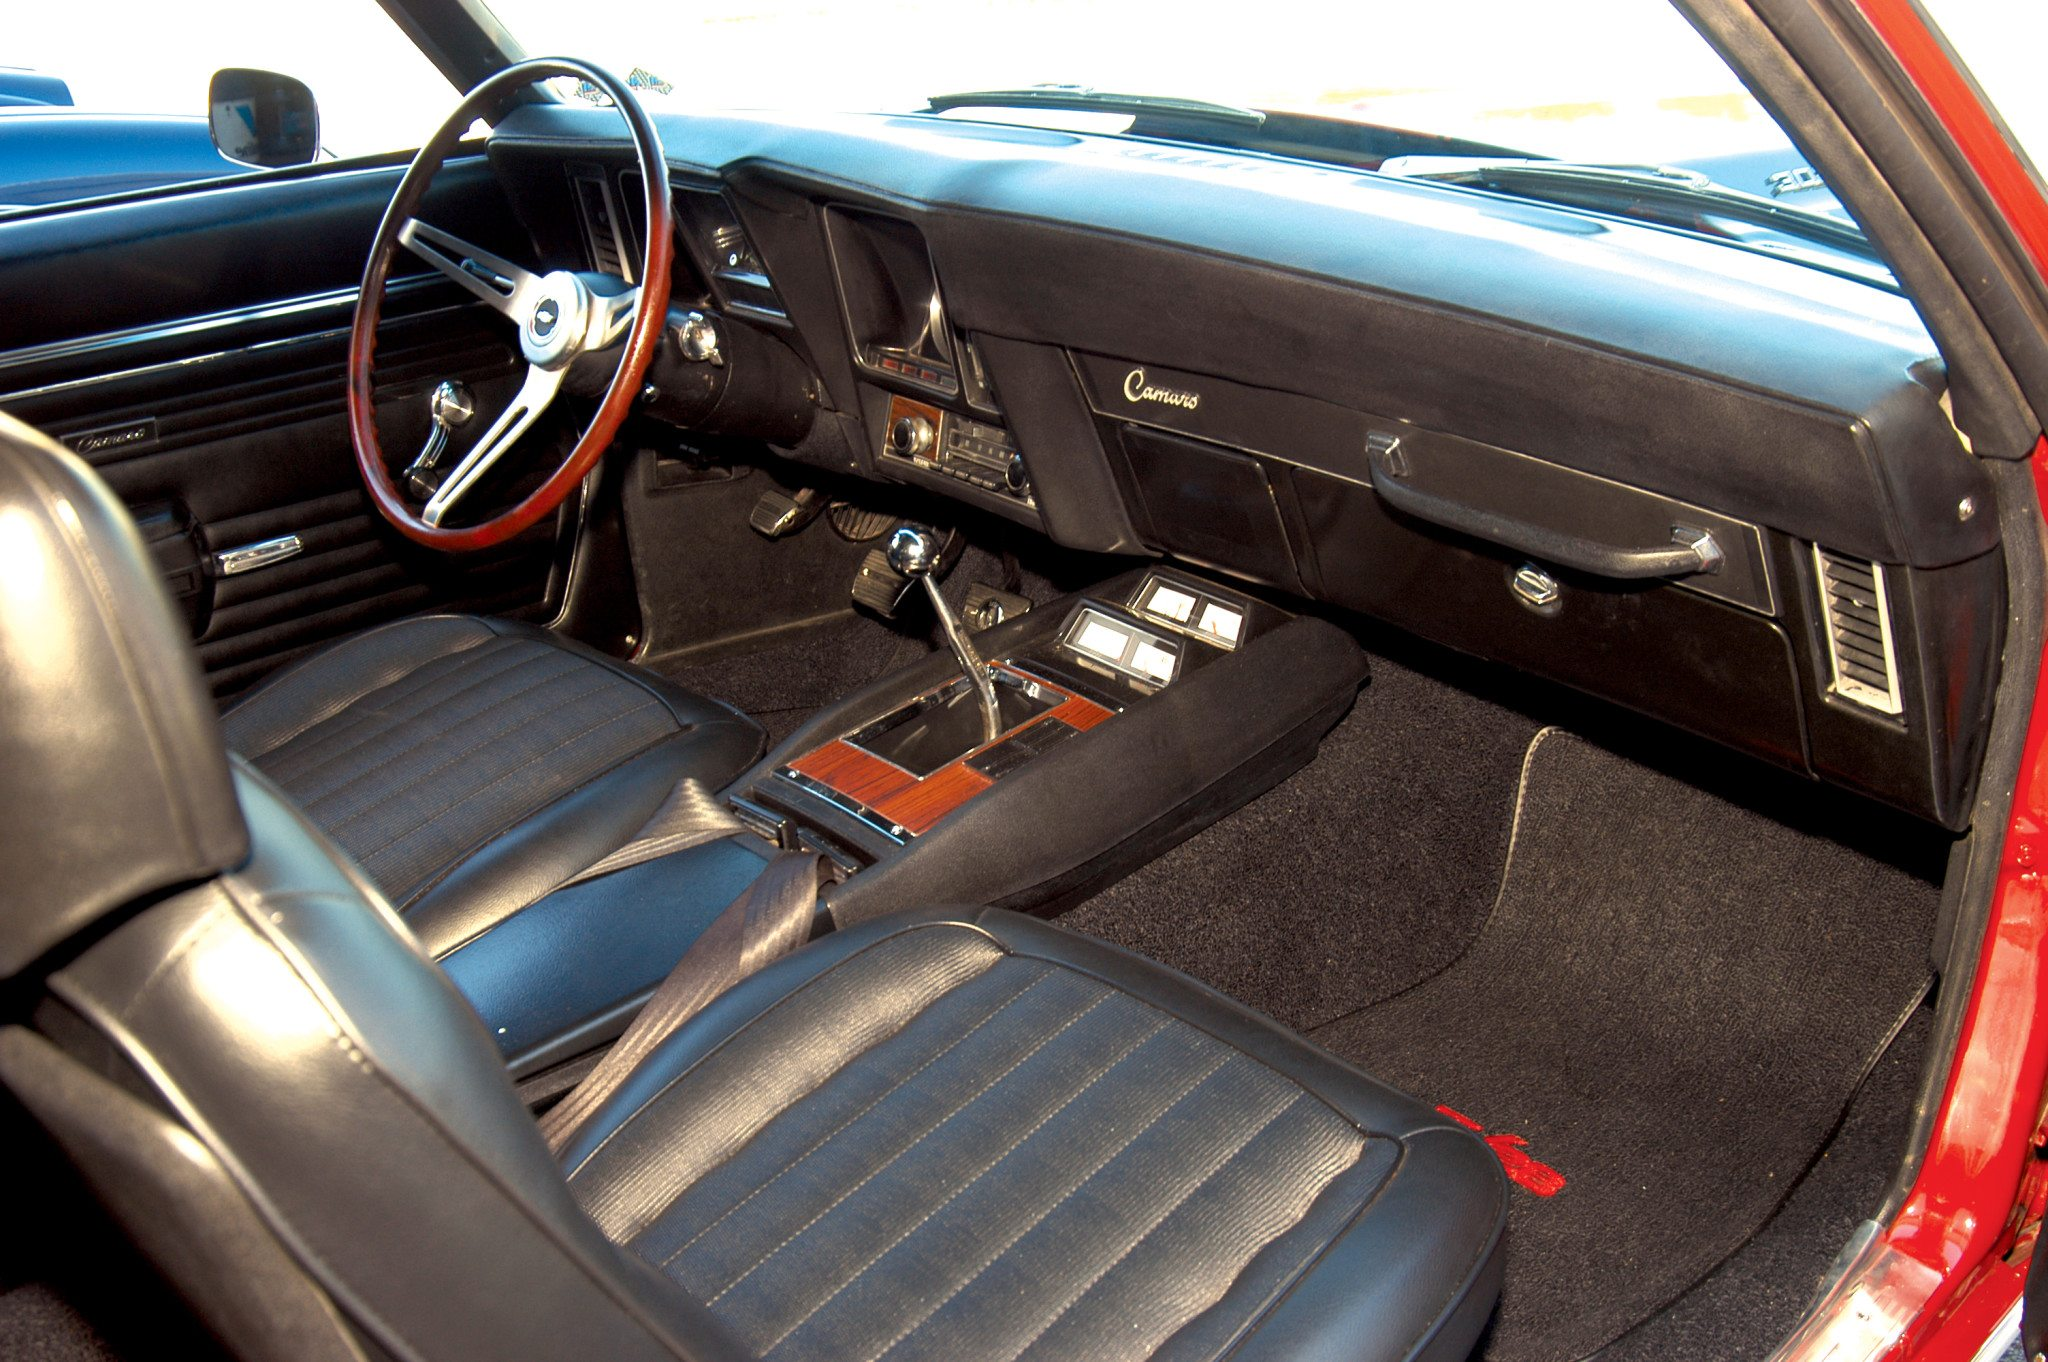 1969 Chevrolet Camaro Z 28 The Other Pony Car Heacock Classic Insurance